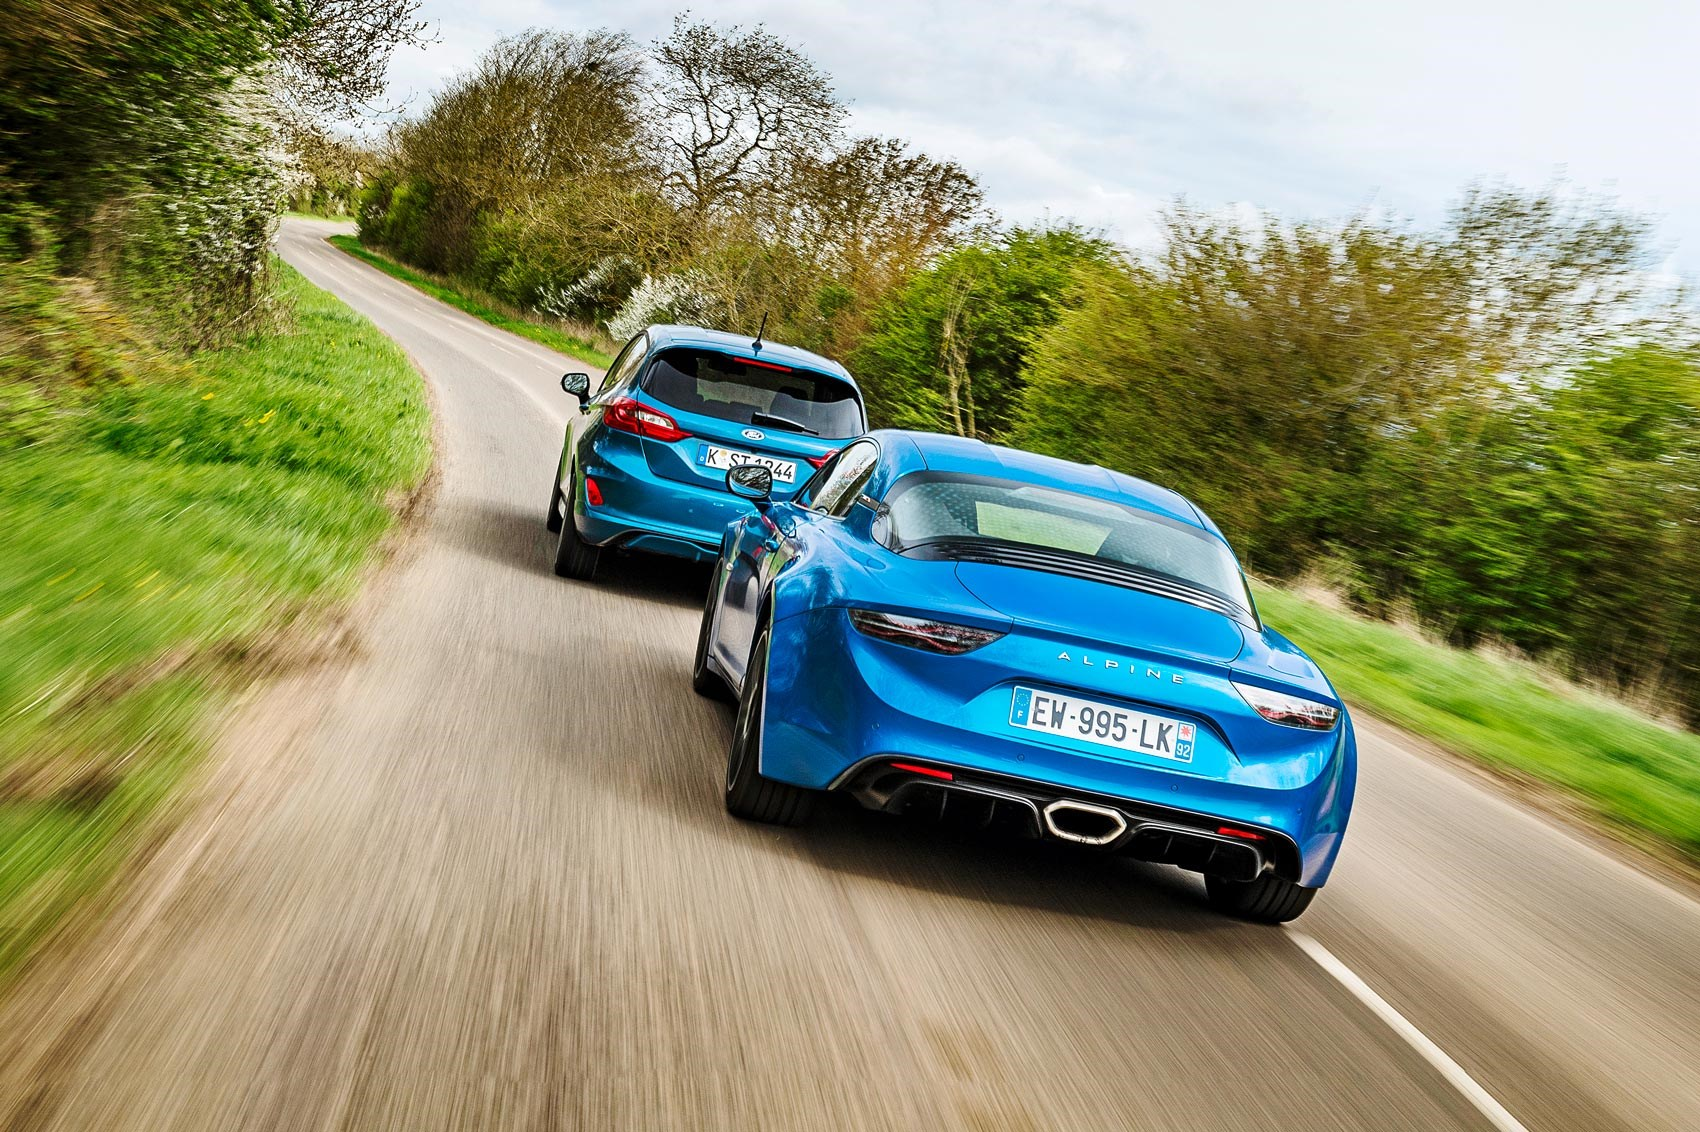 alpine a110 and ford fiesta st twin test review car magazine. Black Bedroom Furniture Sets. Home Design Ideas